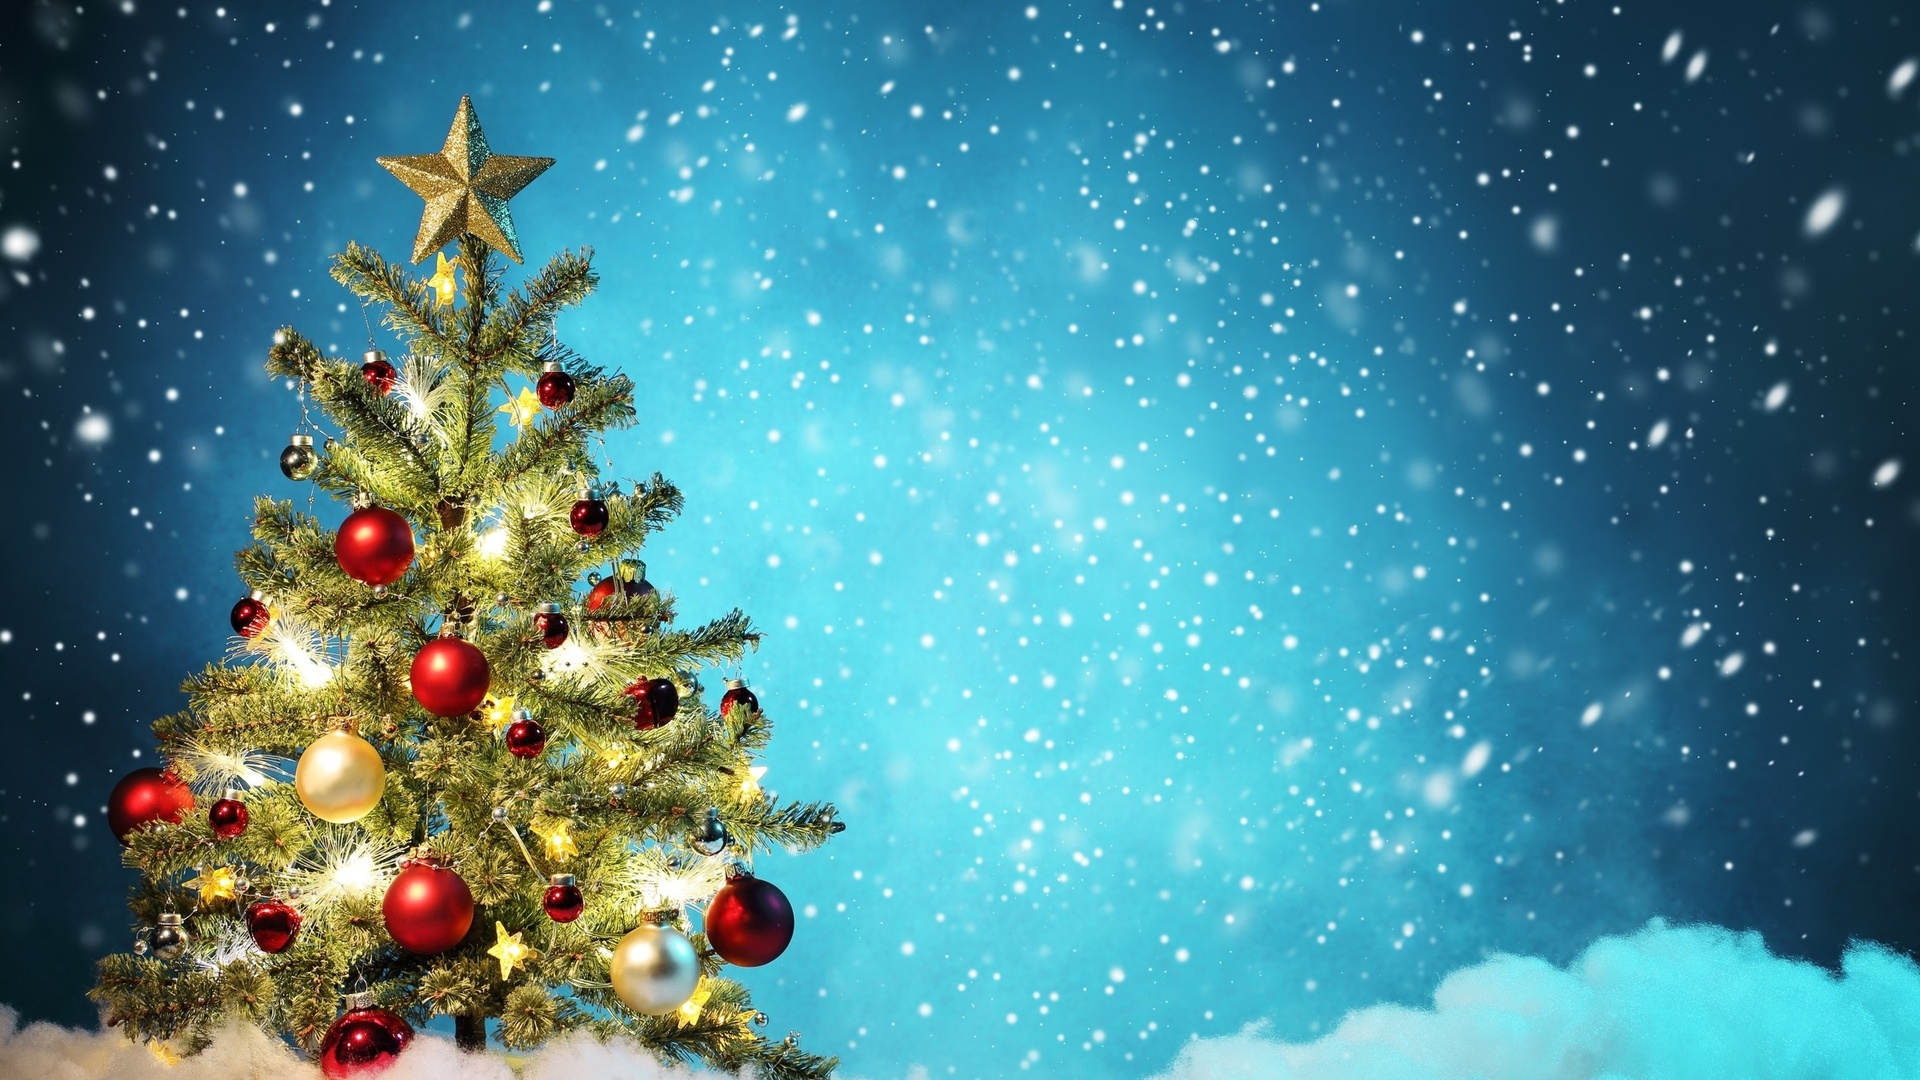 christmas tree wallpaper (14)